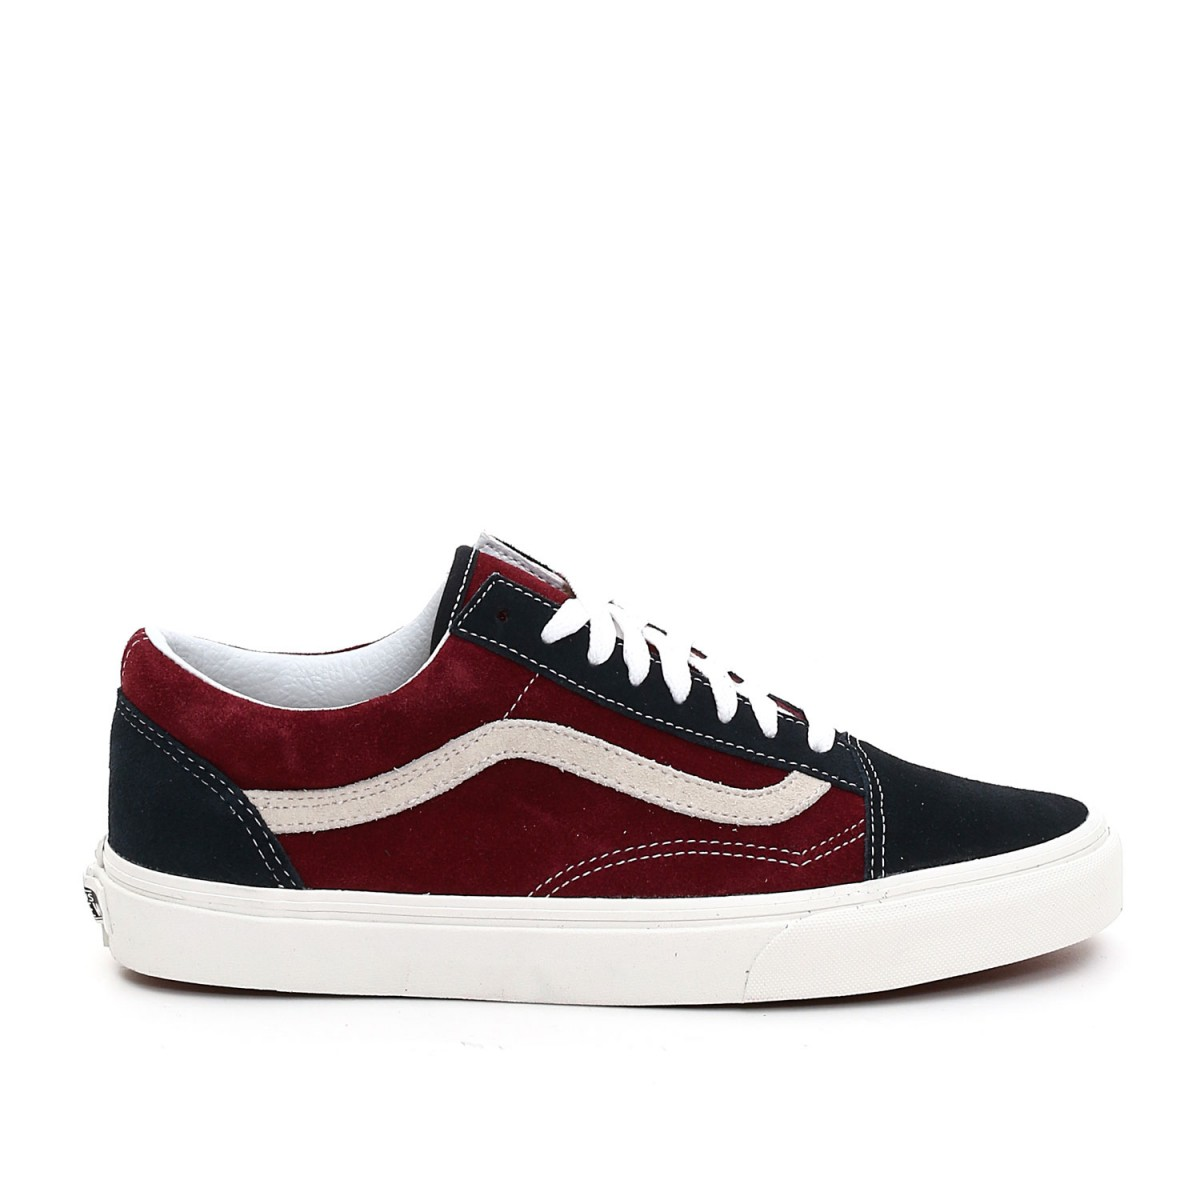 vans old skool bordo donna